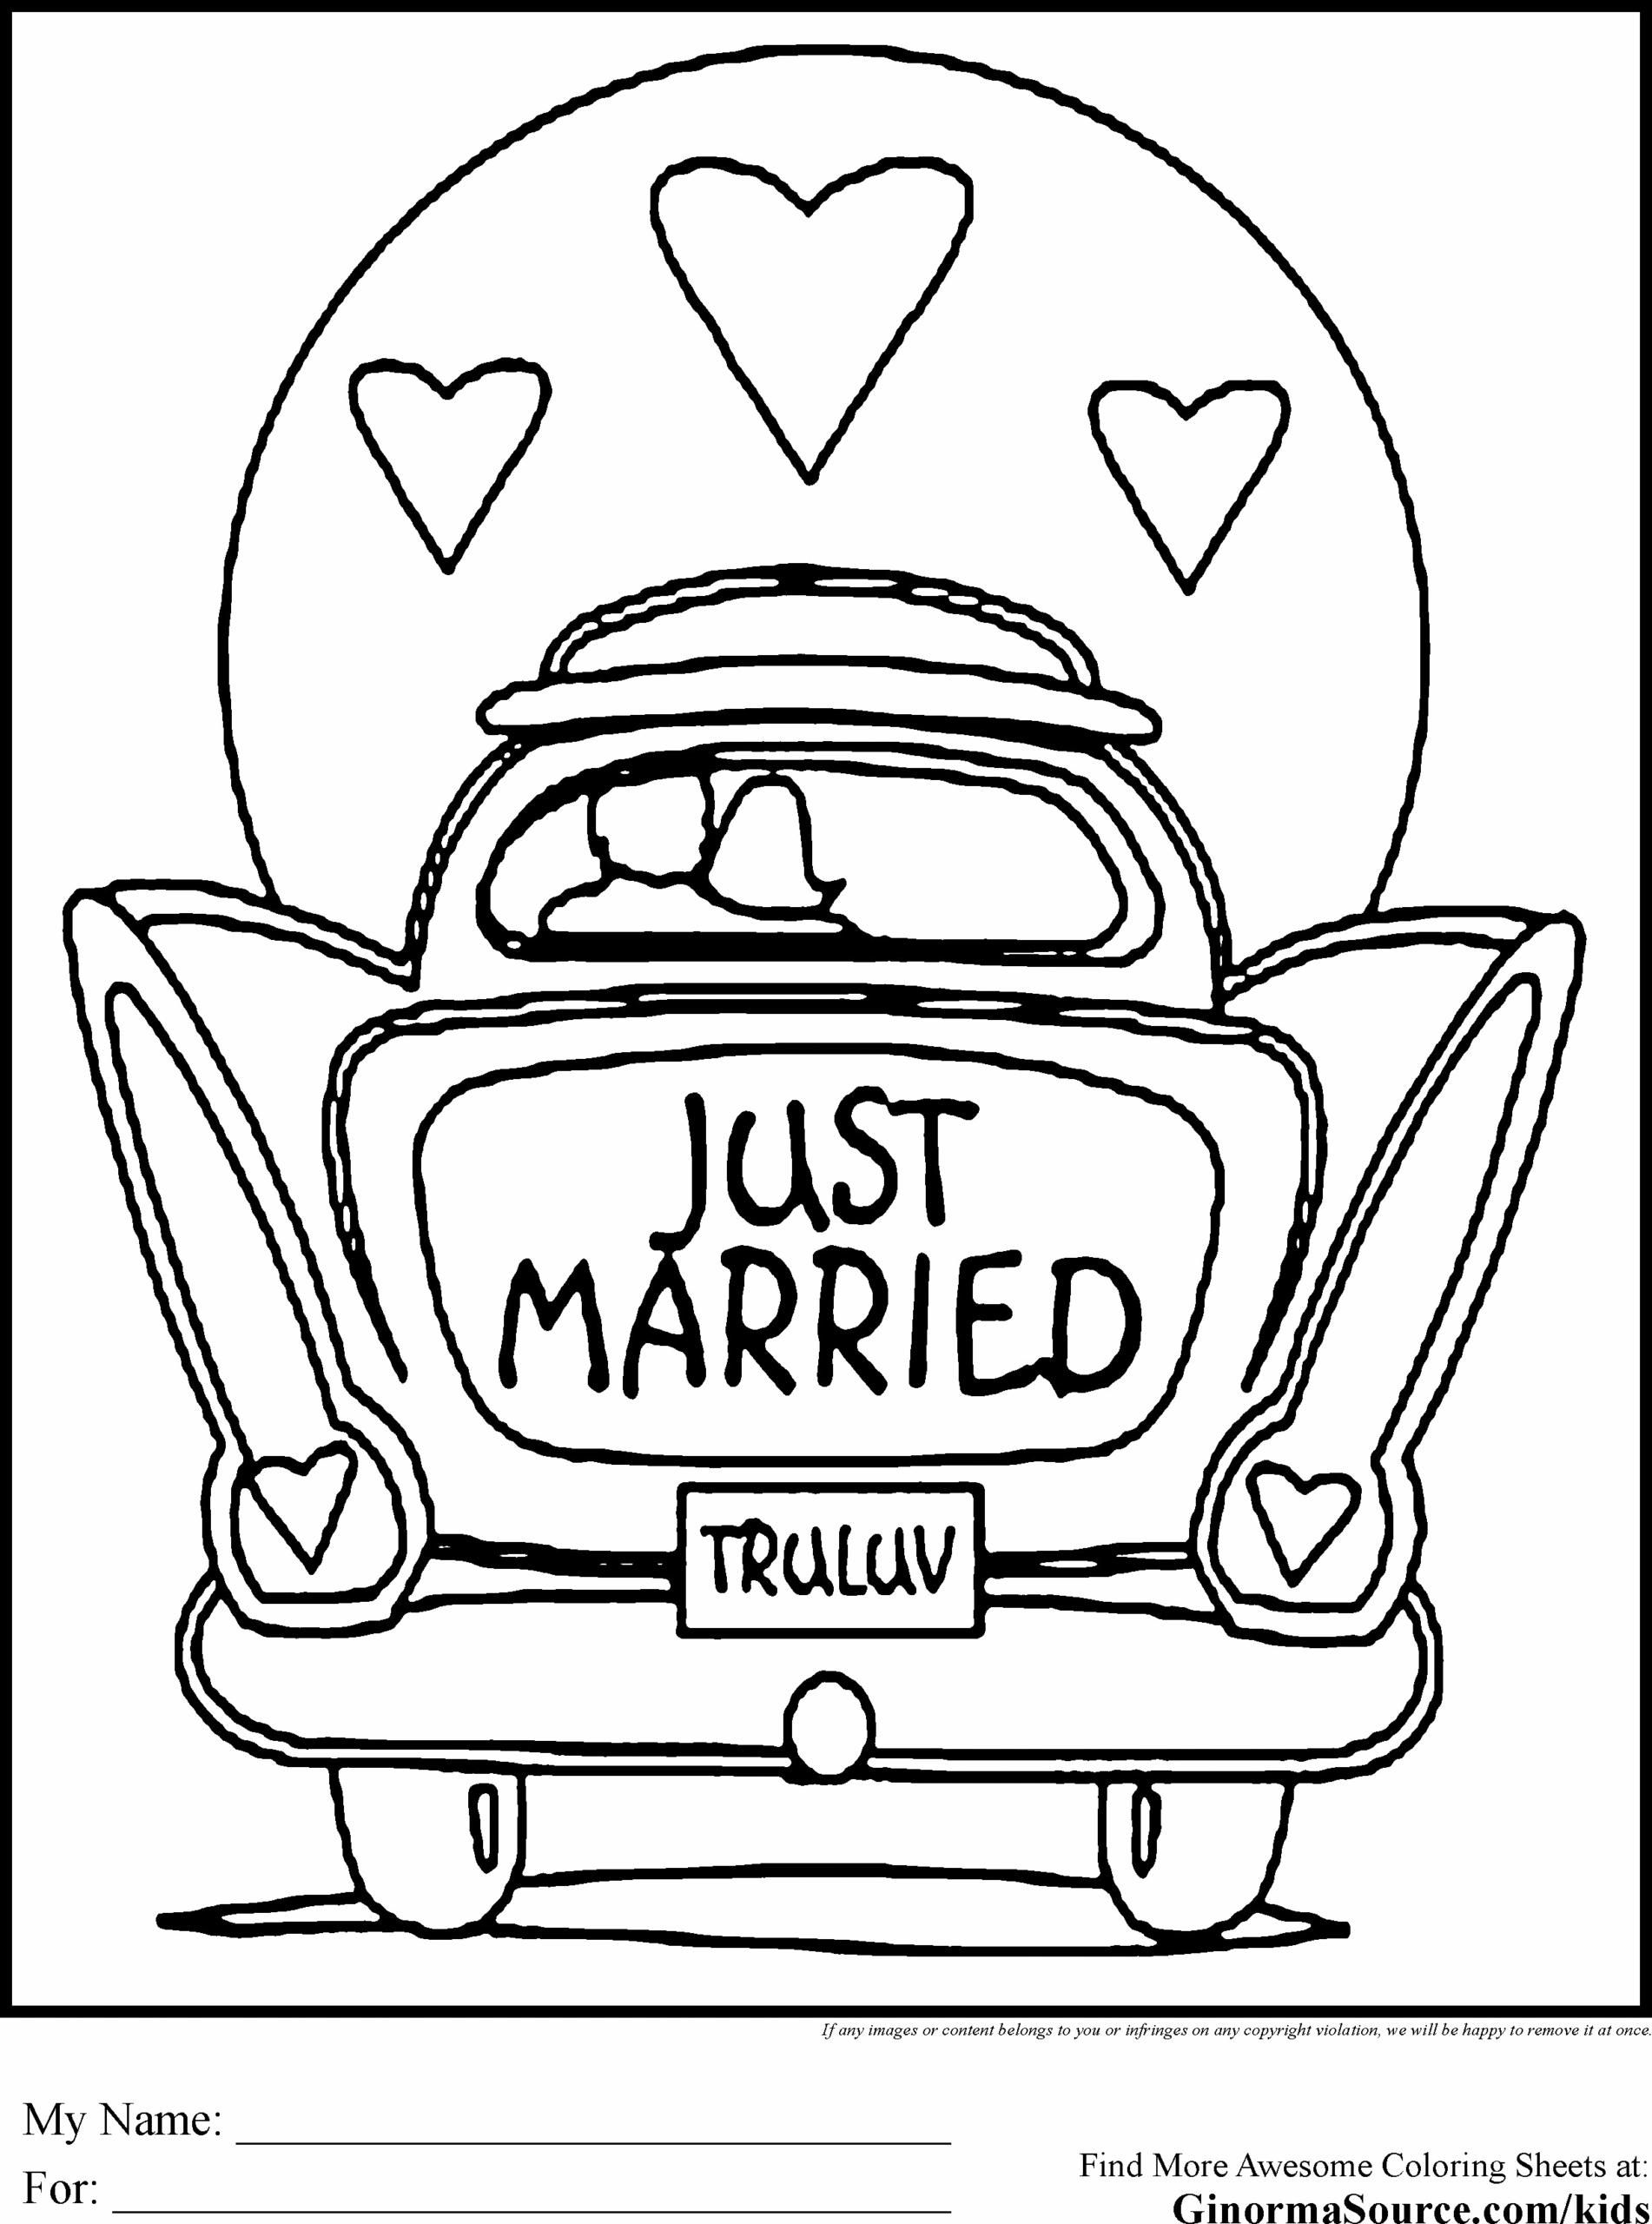 42 Printable Wedding Colouring Pages In 2020 Wedding Coloring Pages Wedding With Kids Coloring Pages To Print